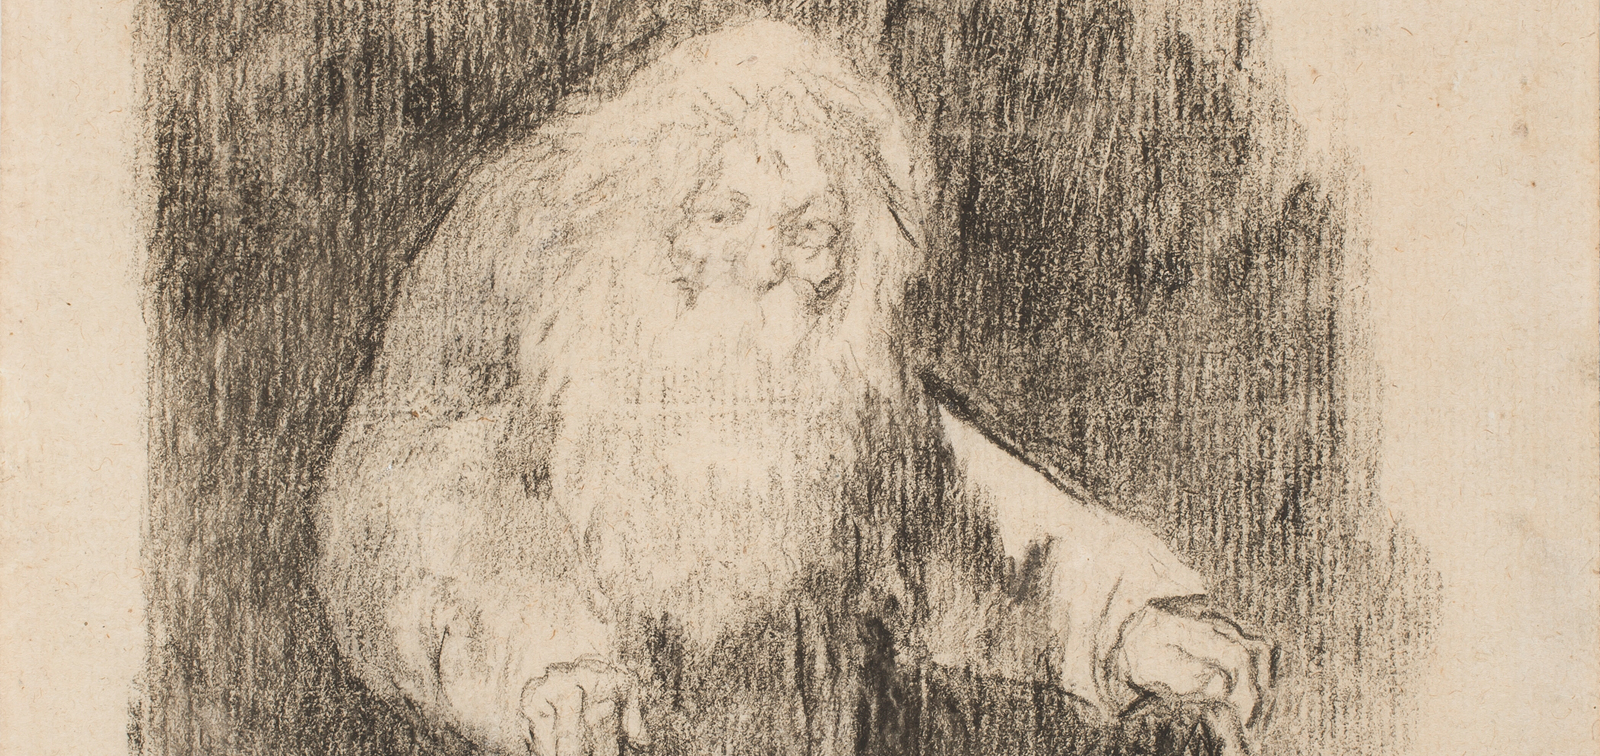 Temporary Installation: Goya's Drawings restored